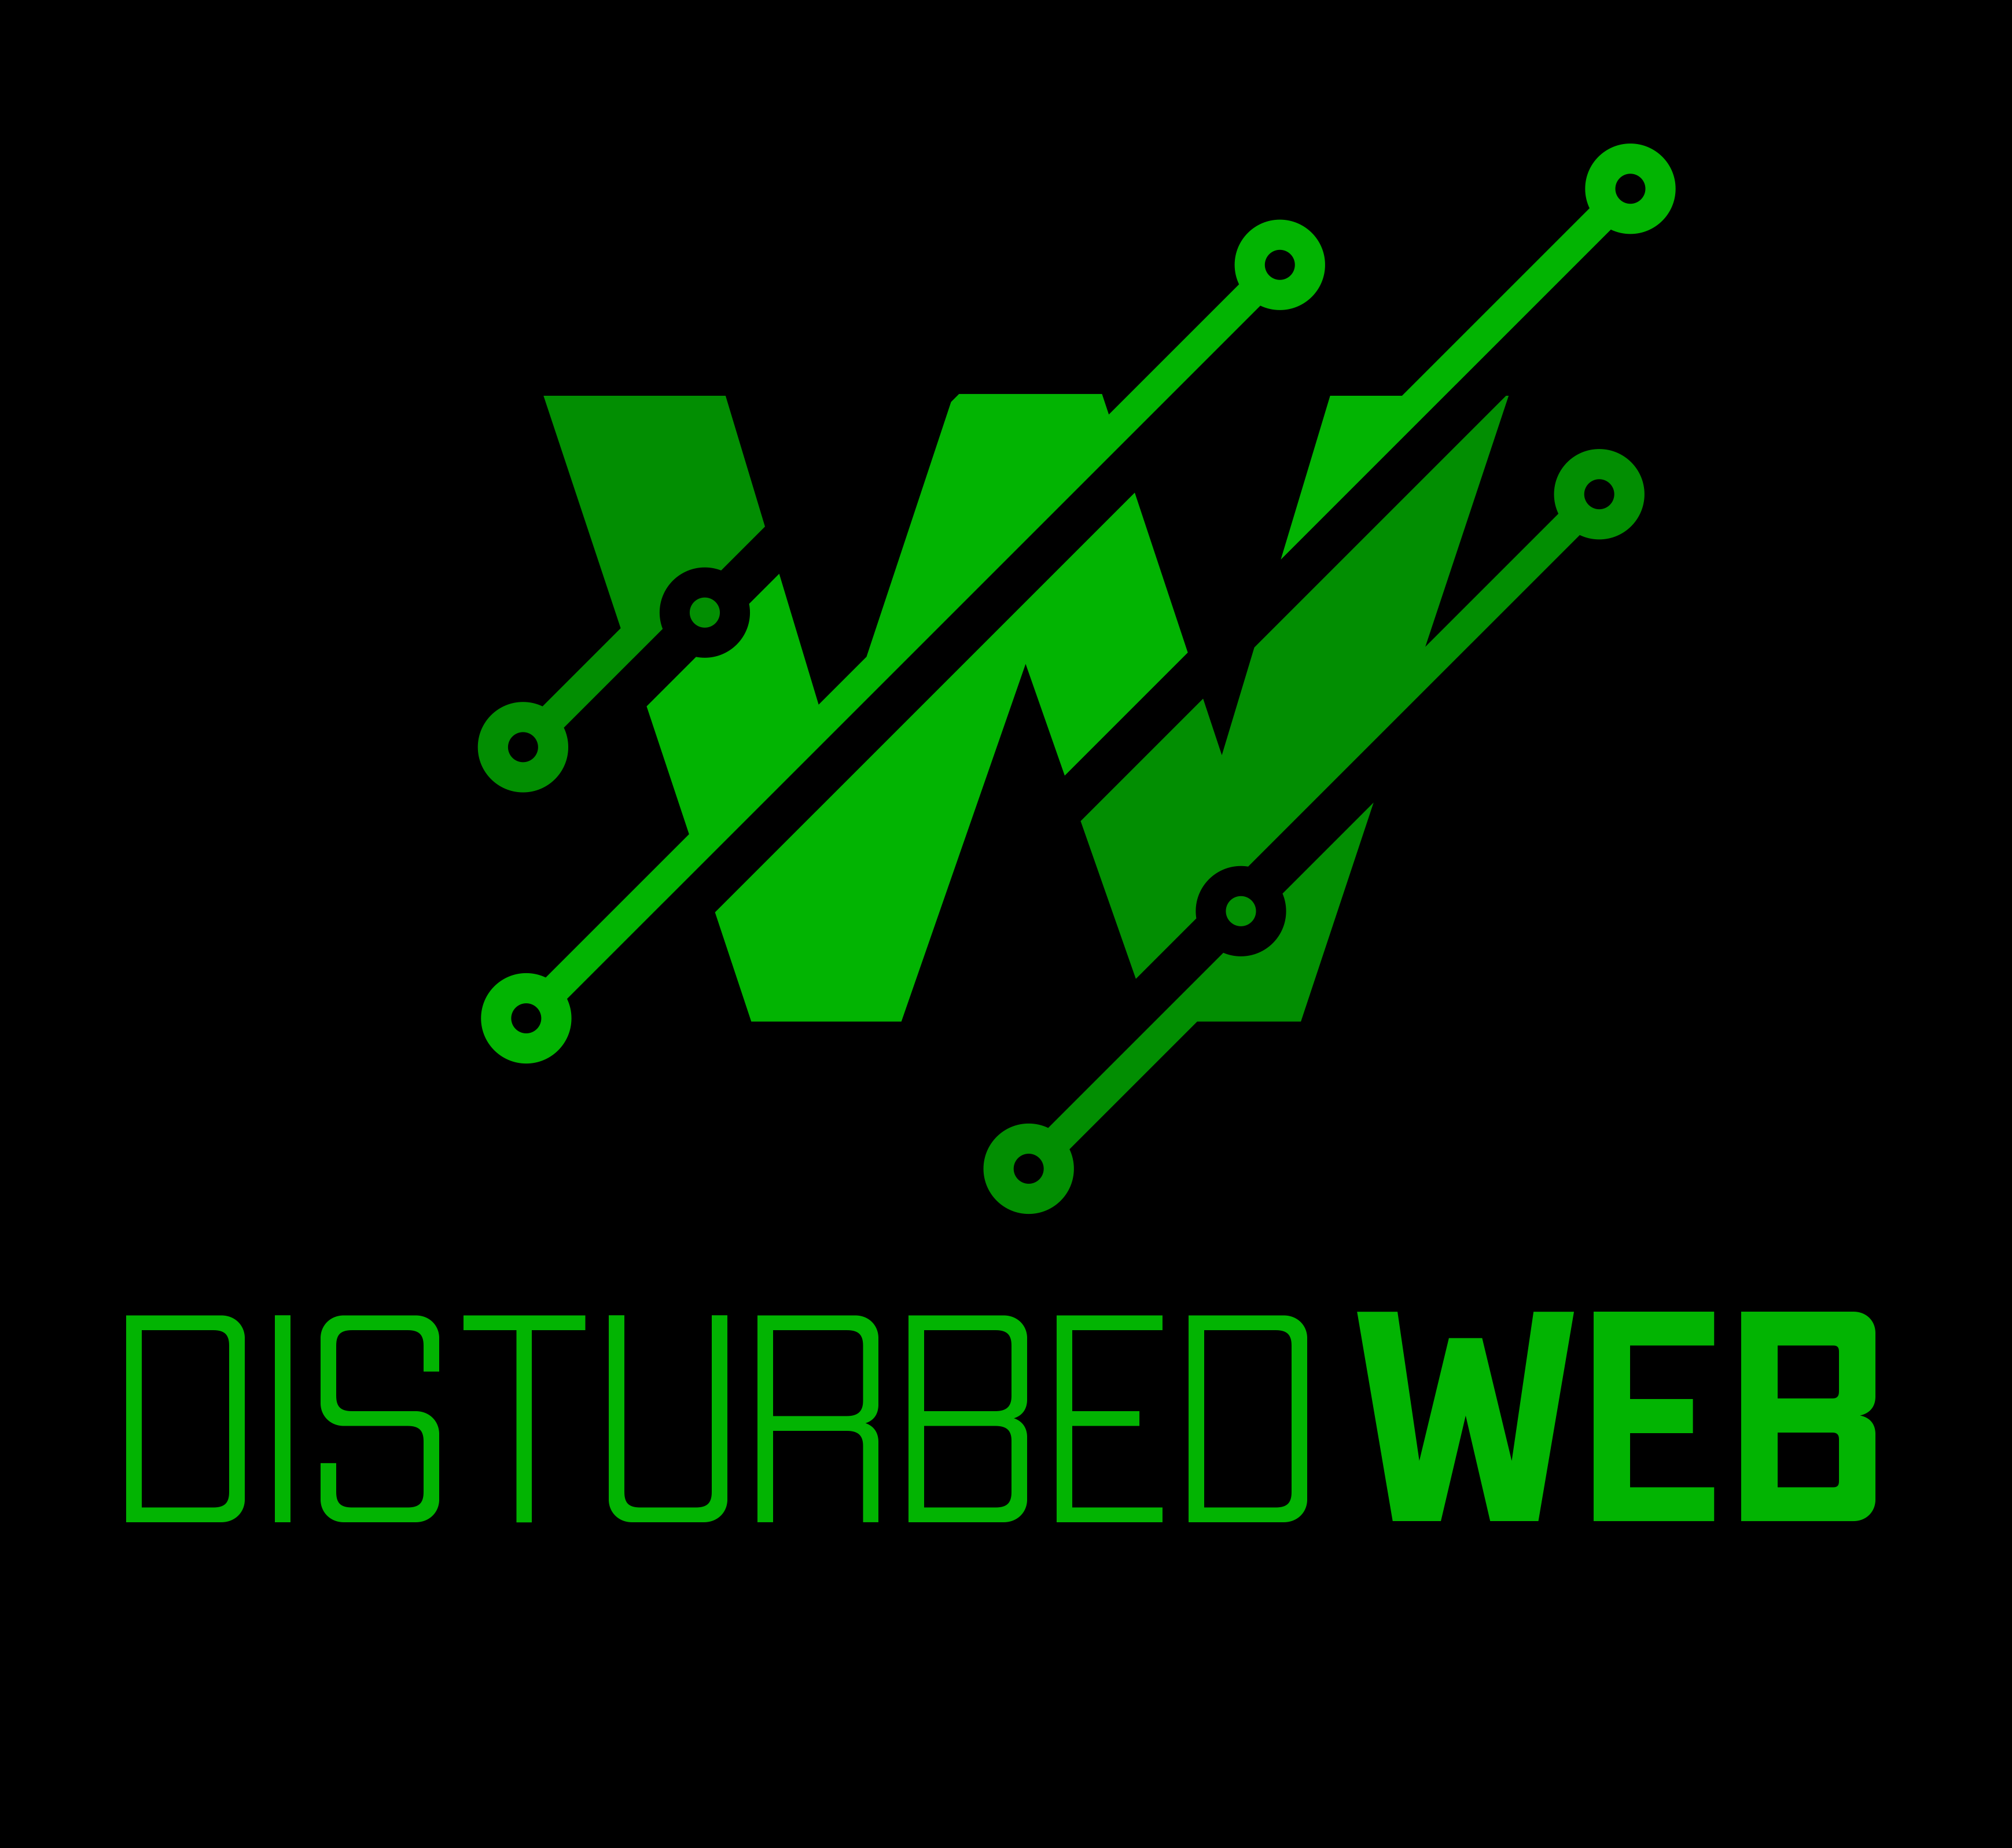 Web Disturbed